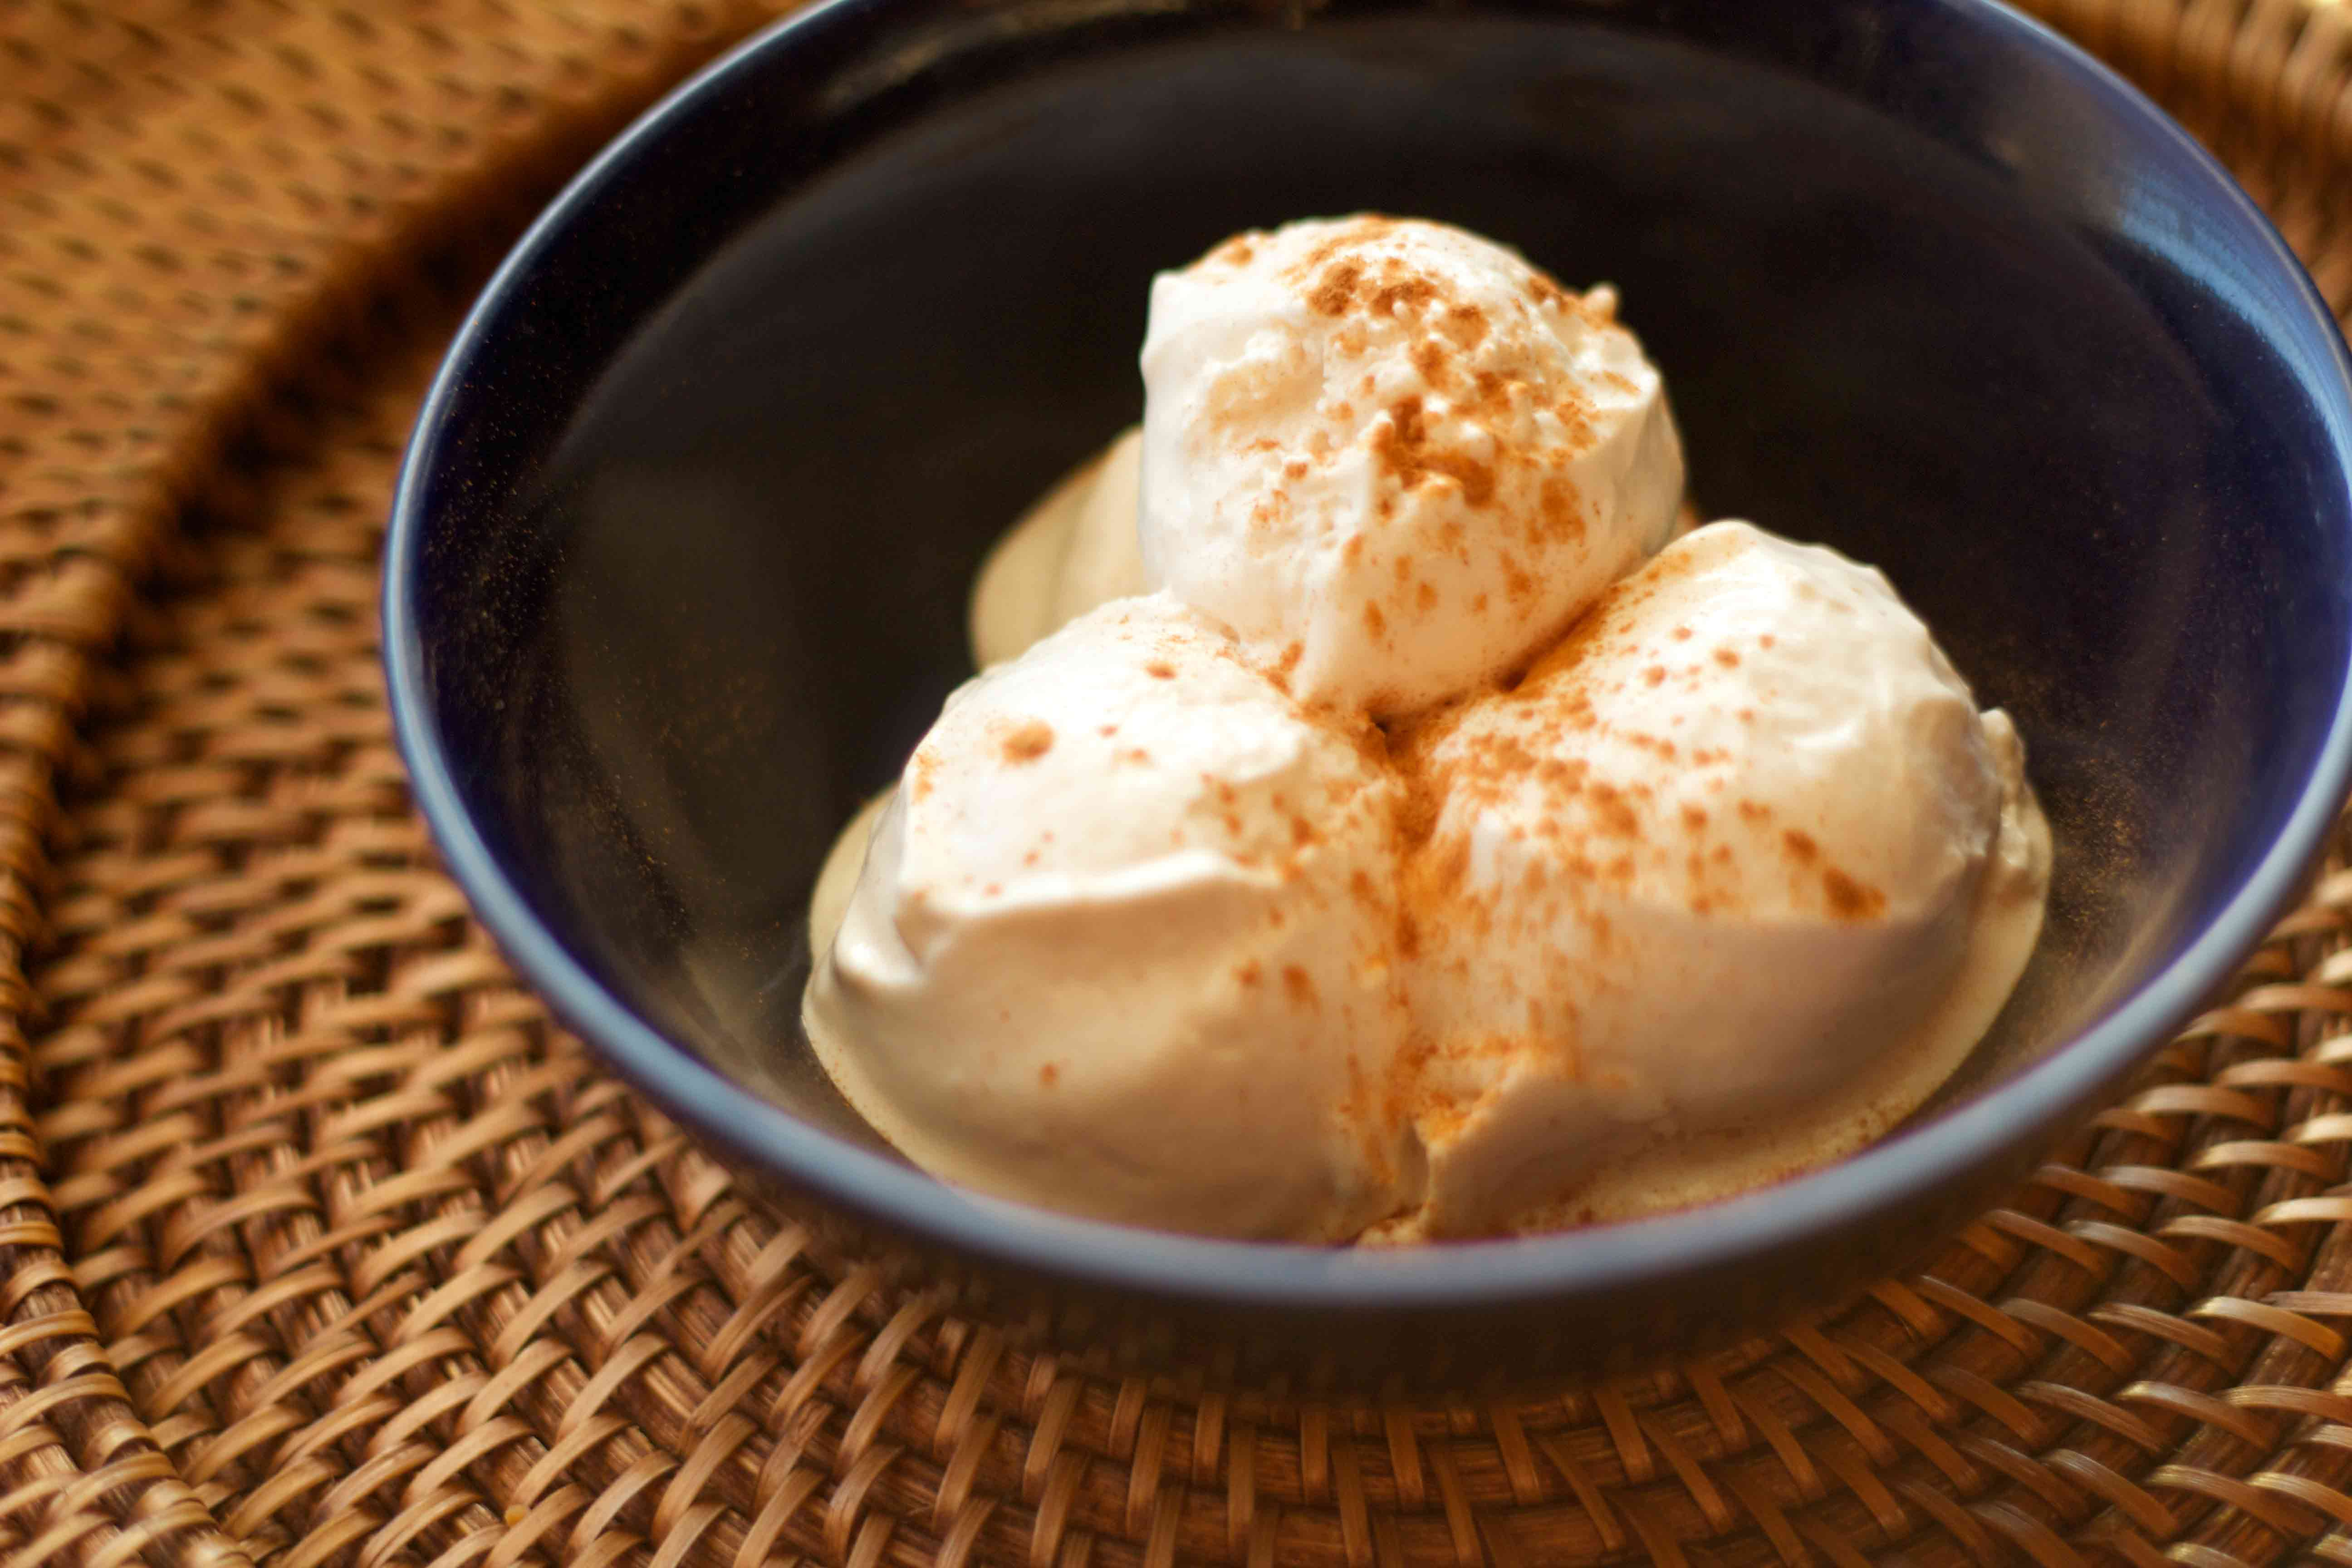 Cinnamon Protein Ice Cream! Uses Greek Yogurt and sugar-free syrups to cut big time on sugar and carbs. Great after weight-loss surgery!